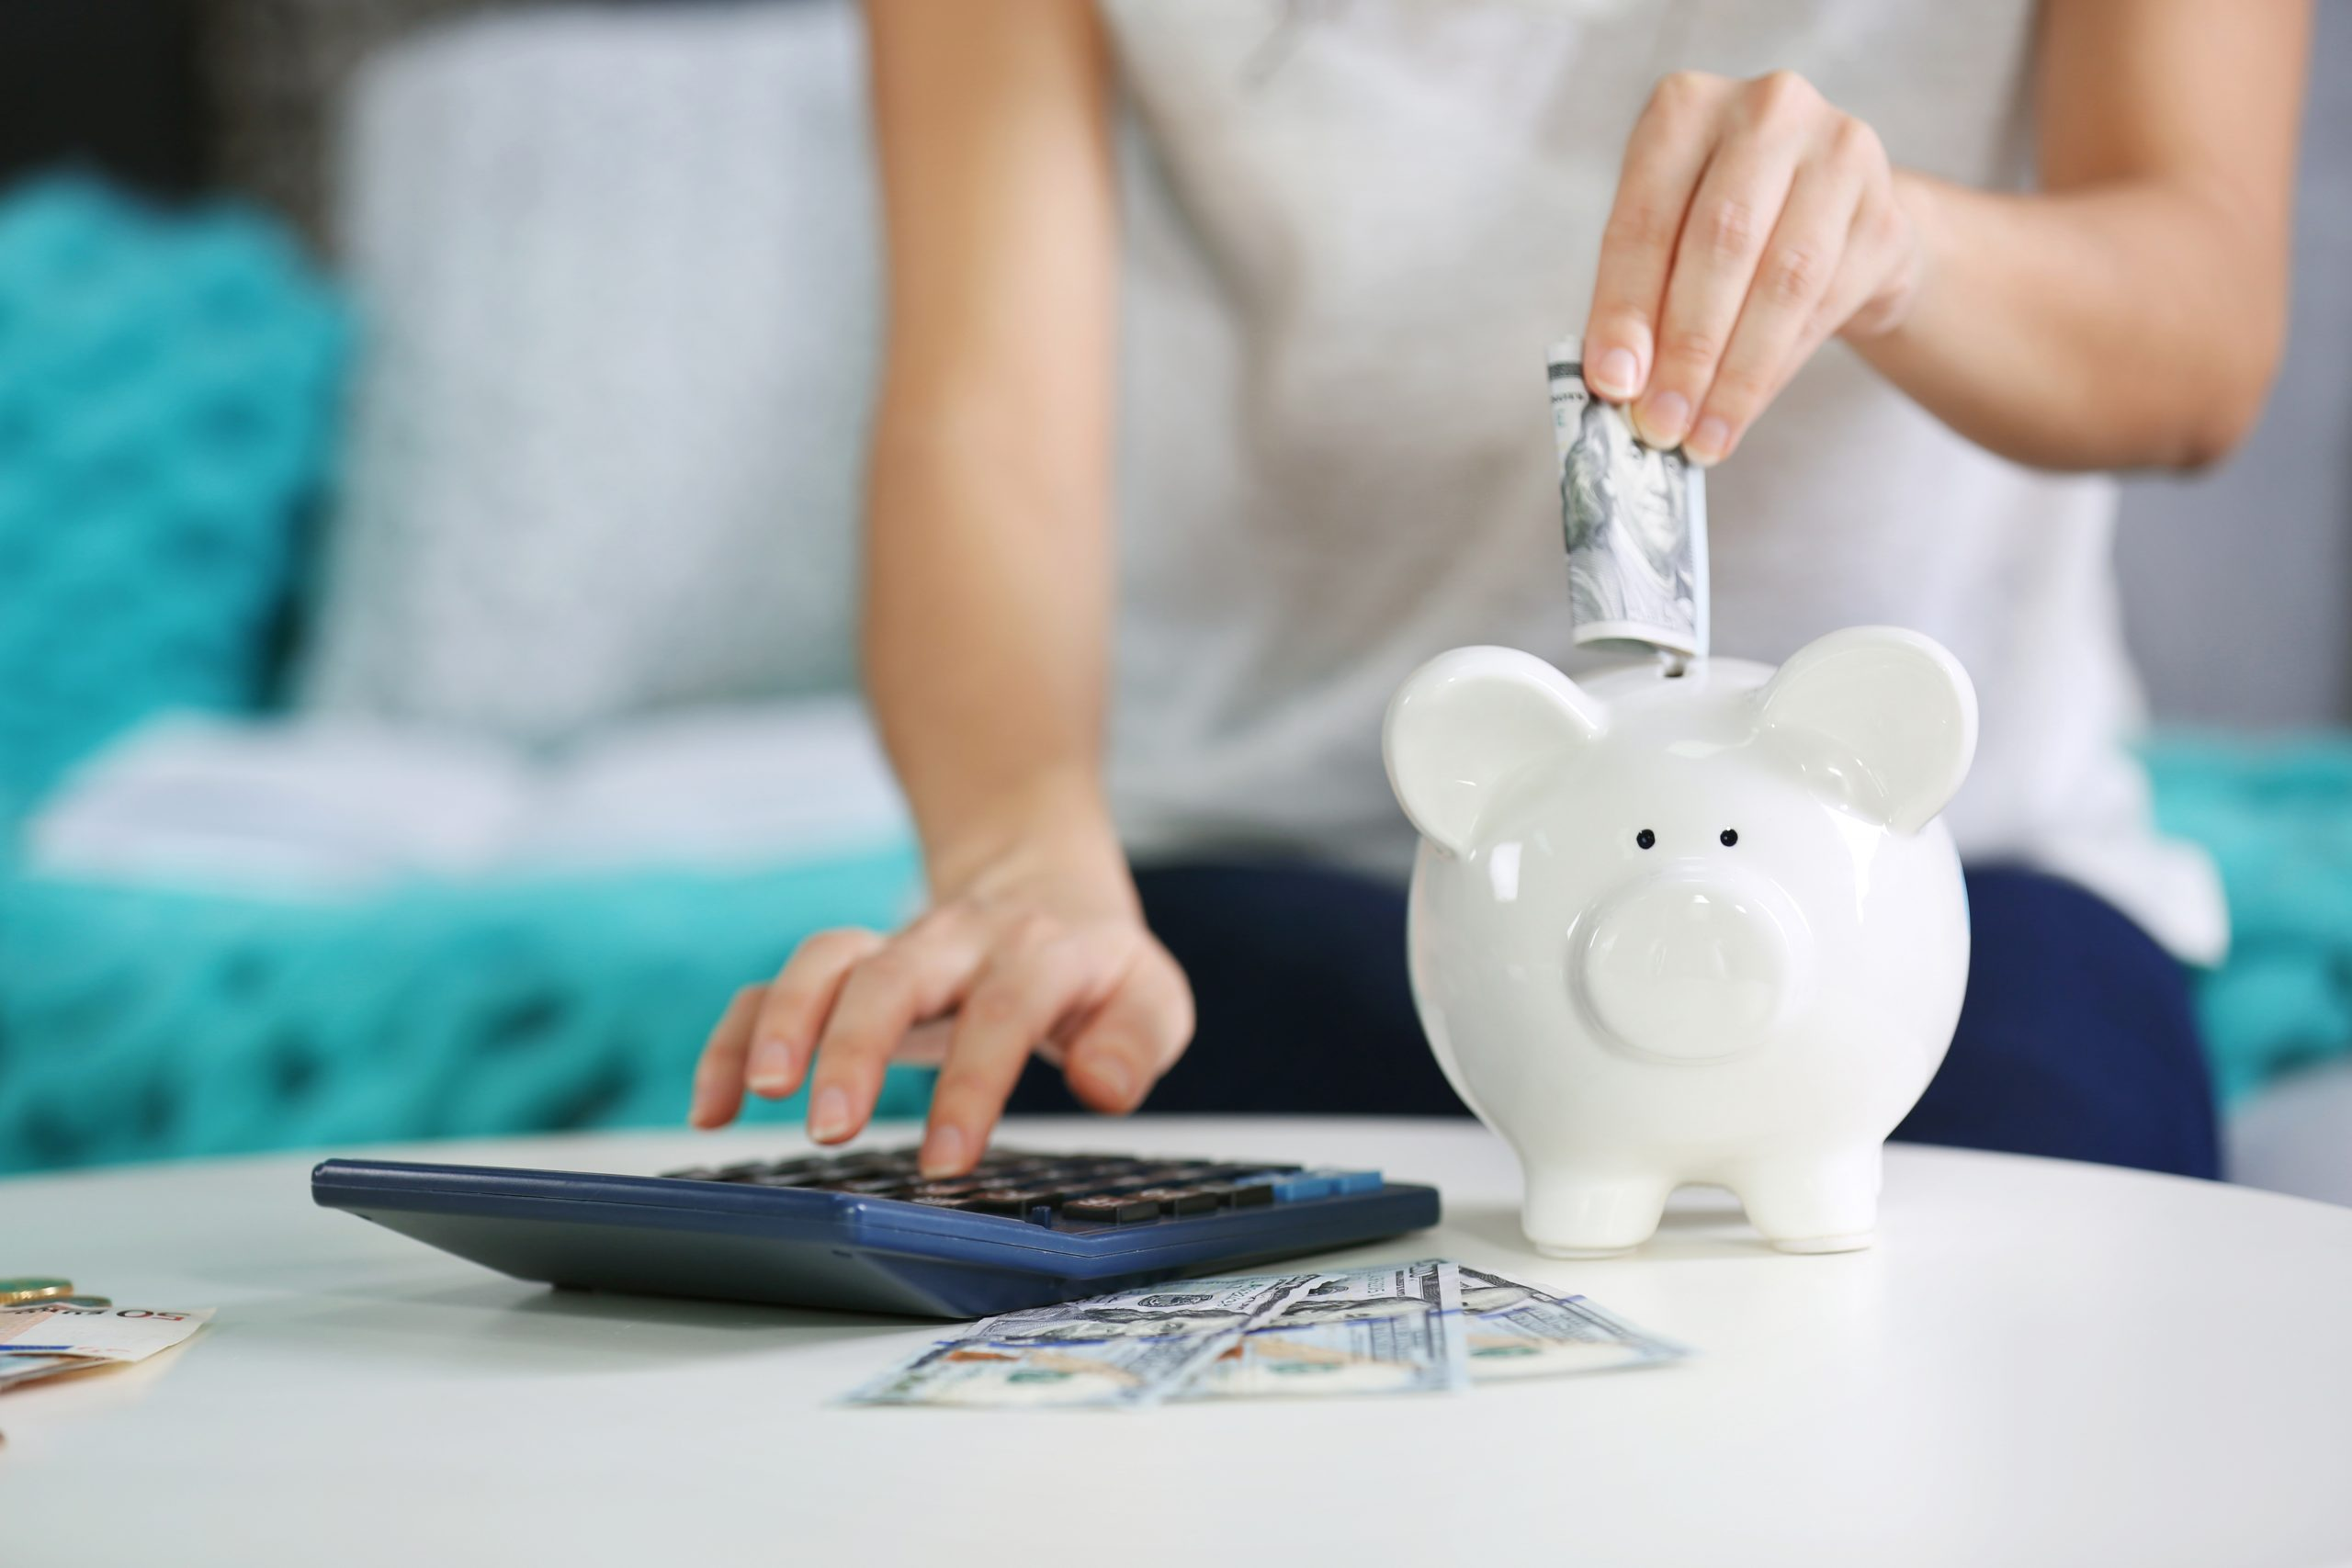 6 Weird Methods People Use to Save Money